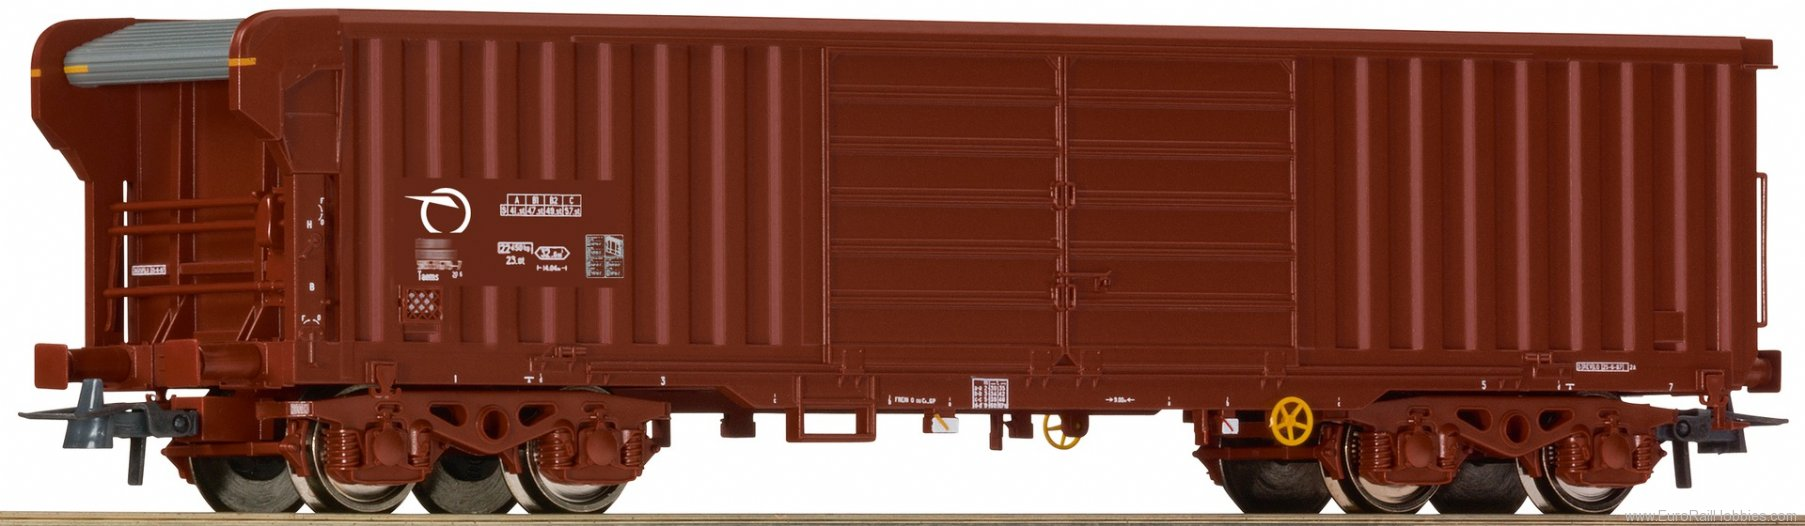 Roco 76945 Rolling roof wagon, ZSSK